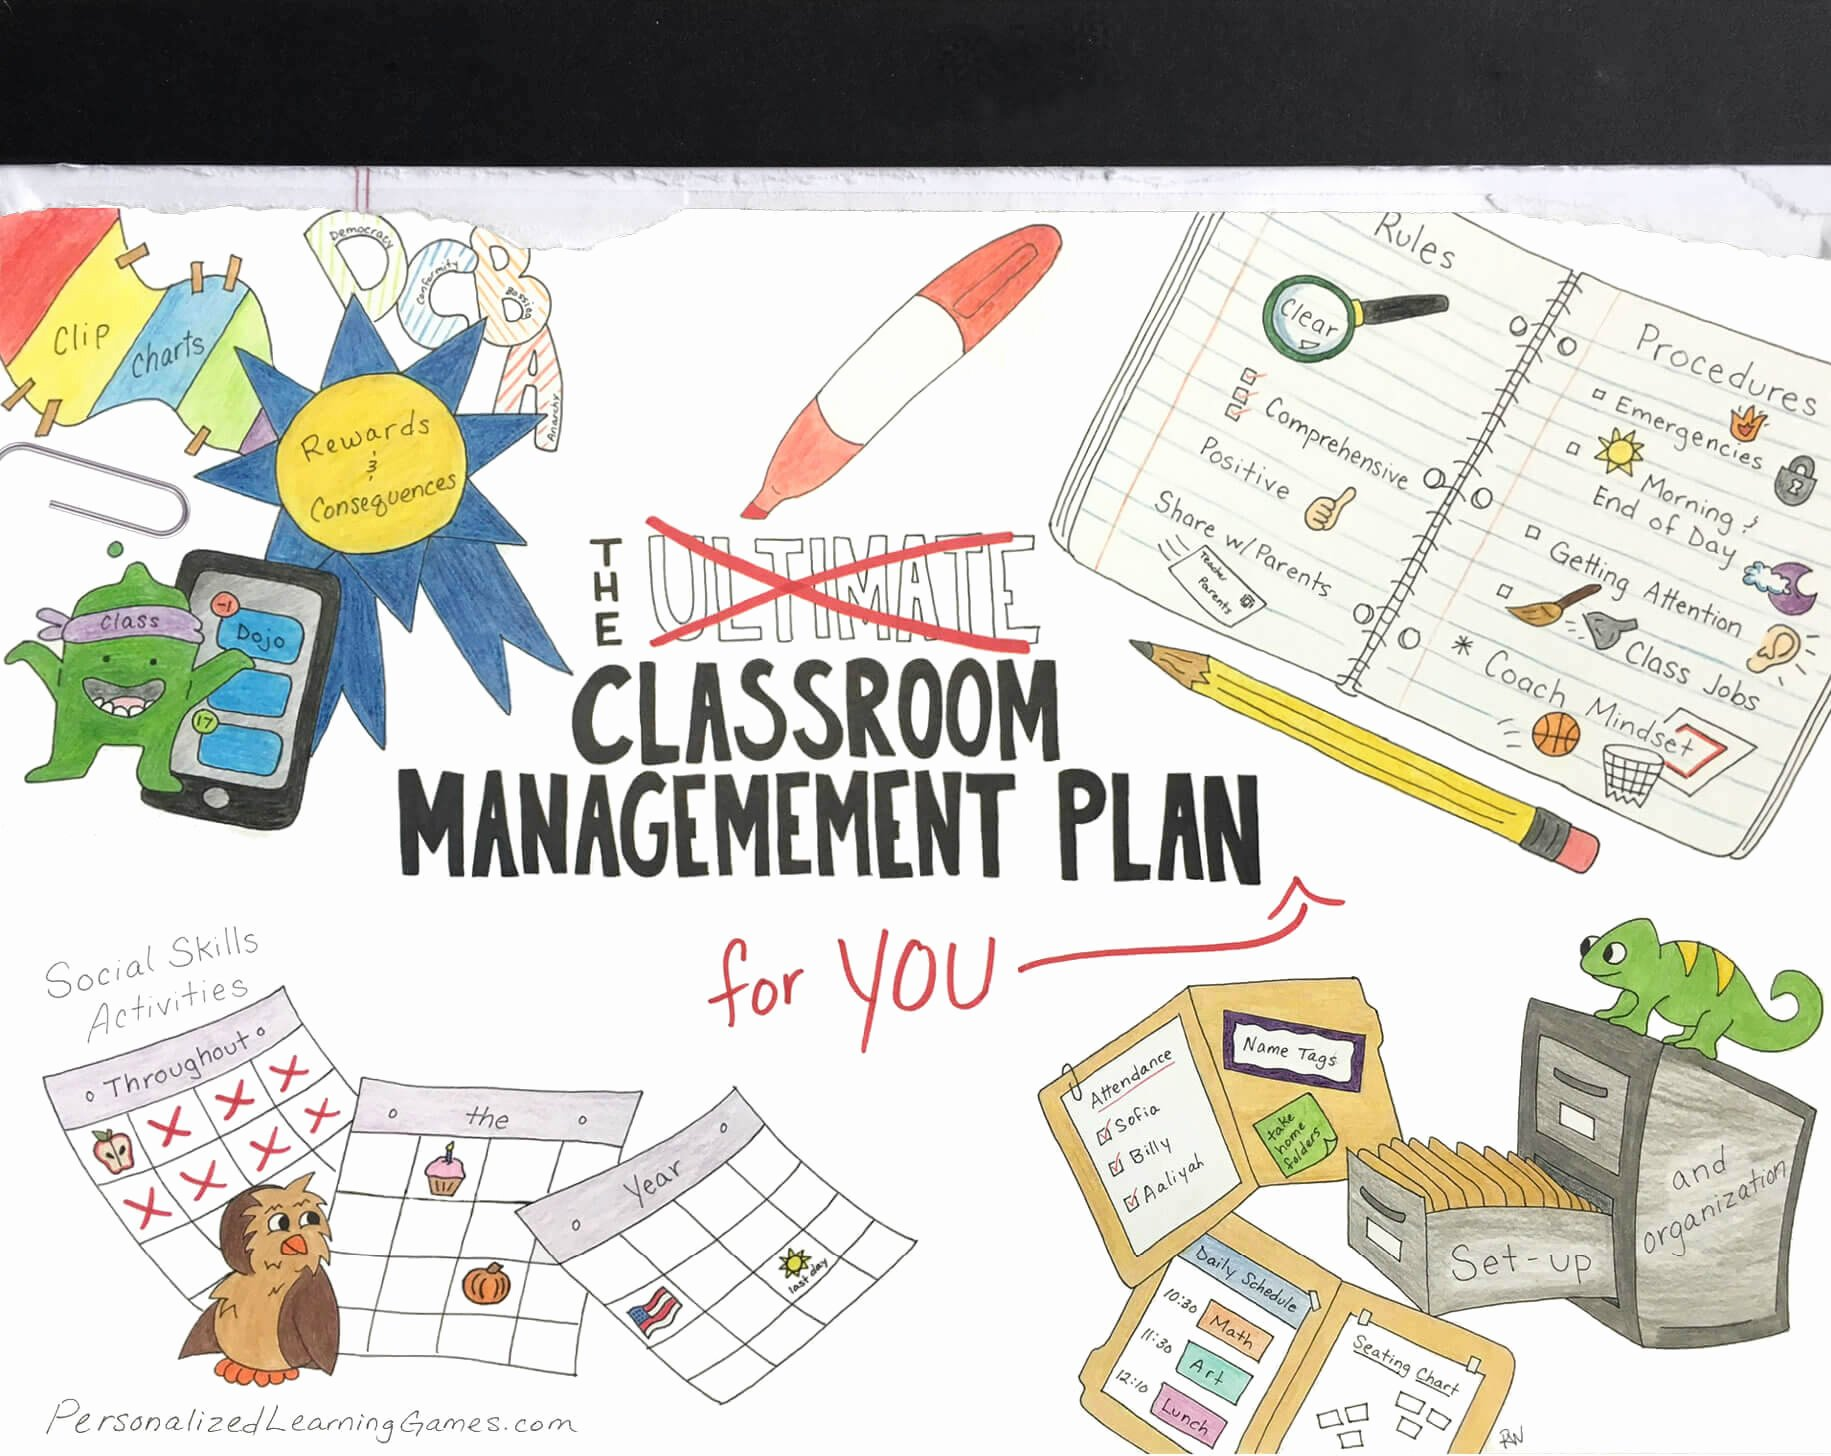 Classroom Management Plan Template Elementary New A Classroom Management Plan for Elementary School Teachers